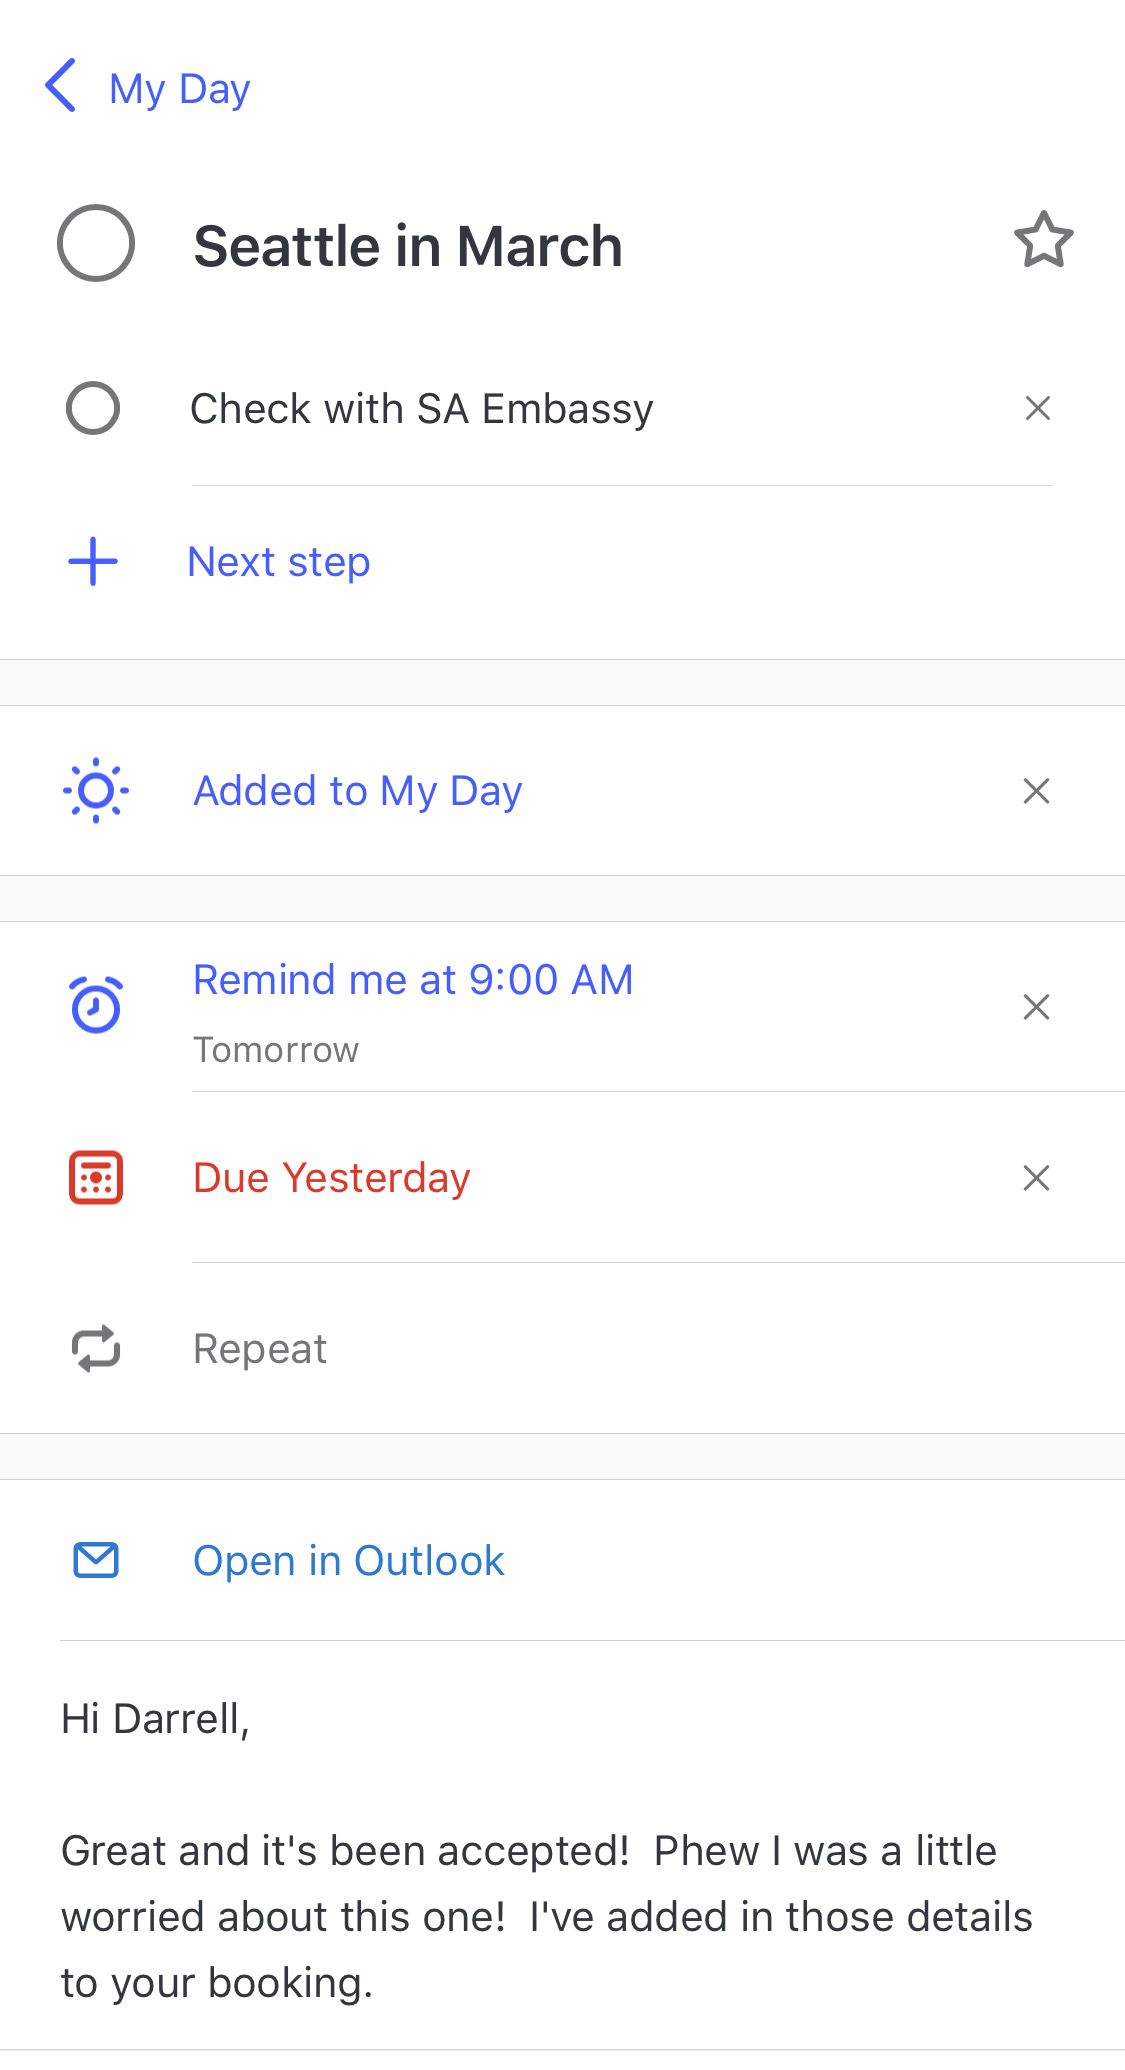 Manage flagged email in Microsoft ToDo – Darrell